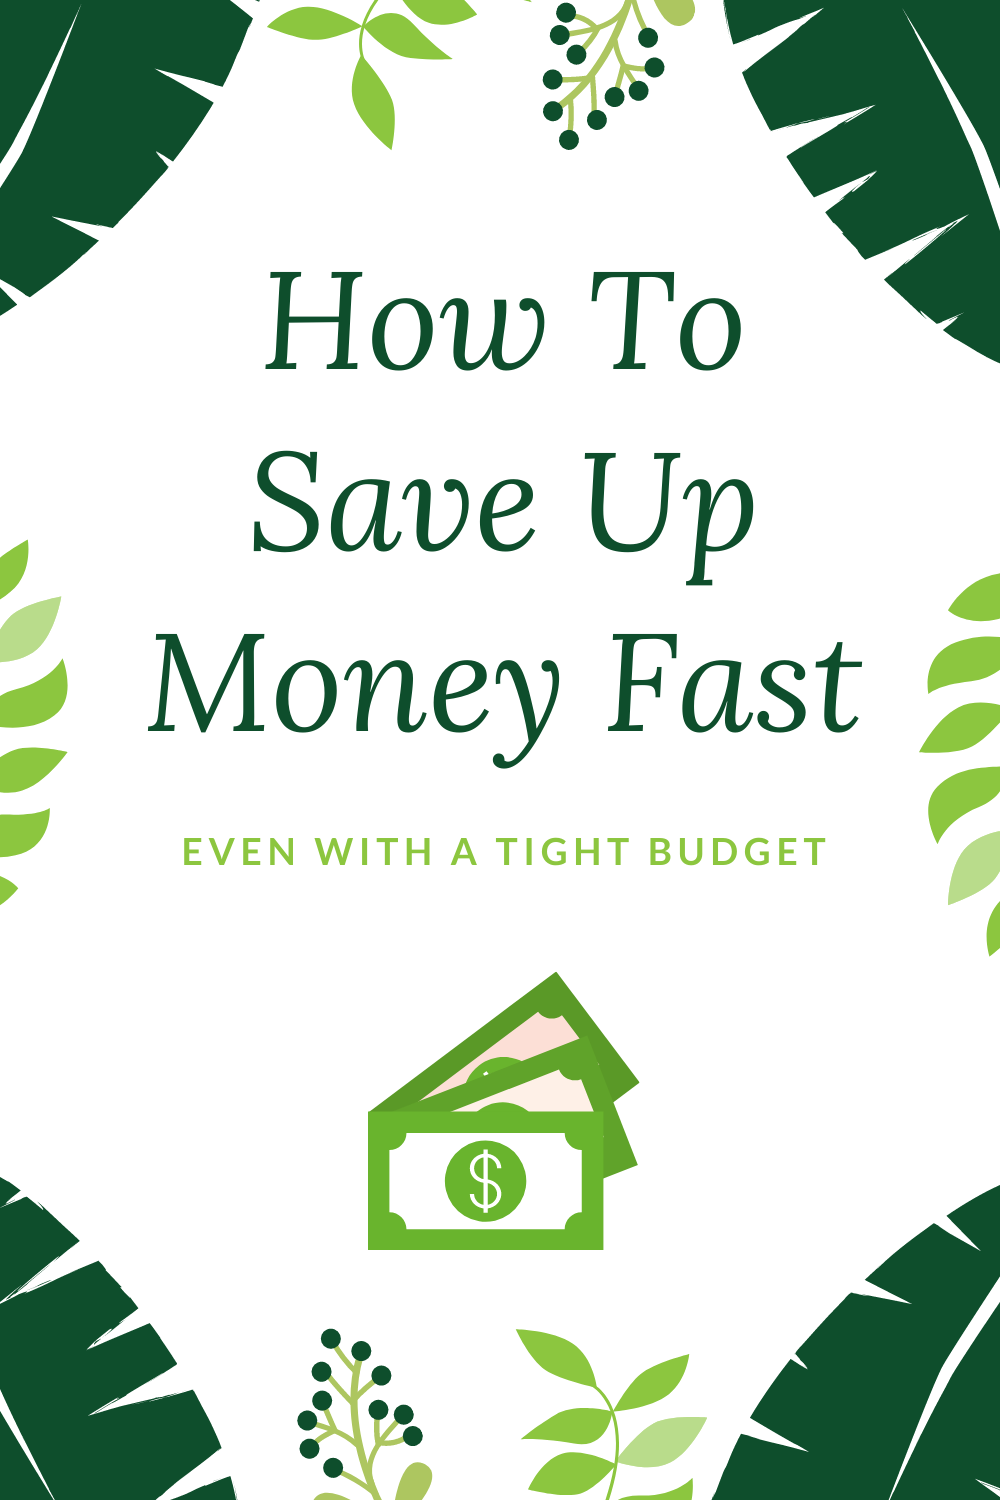 How To Save Up Money Fast